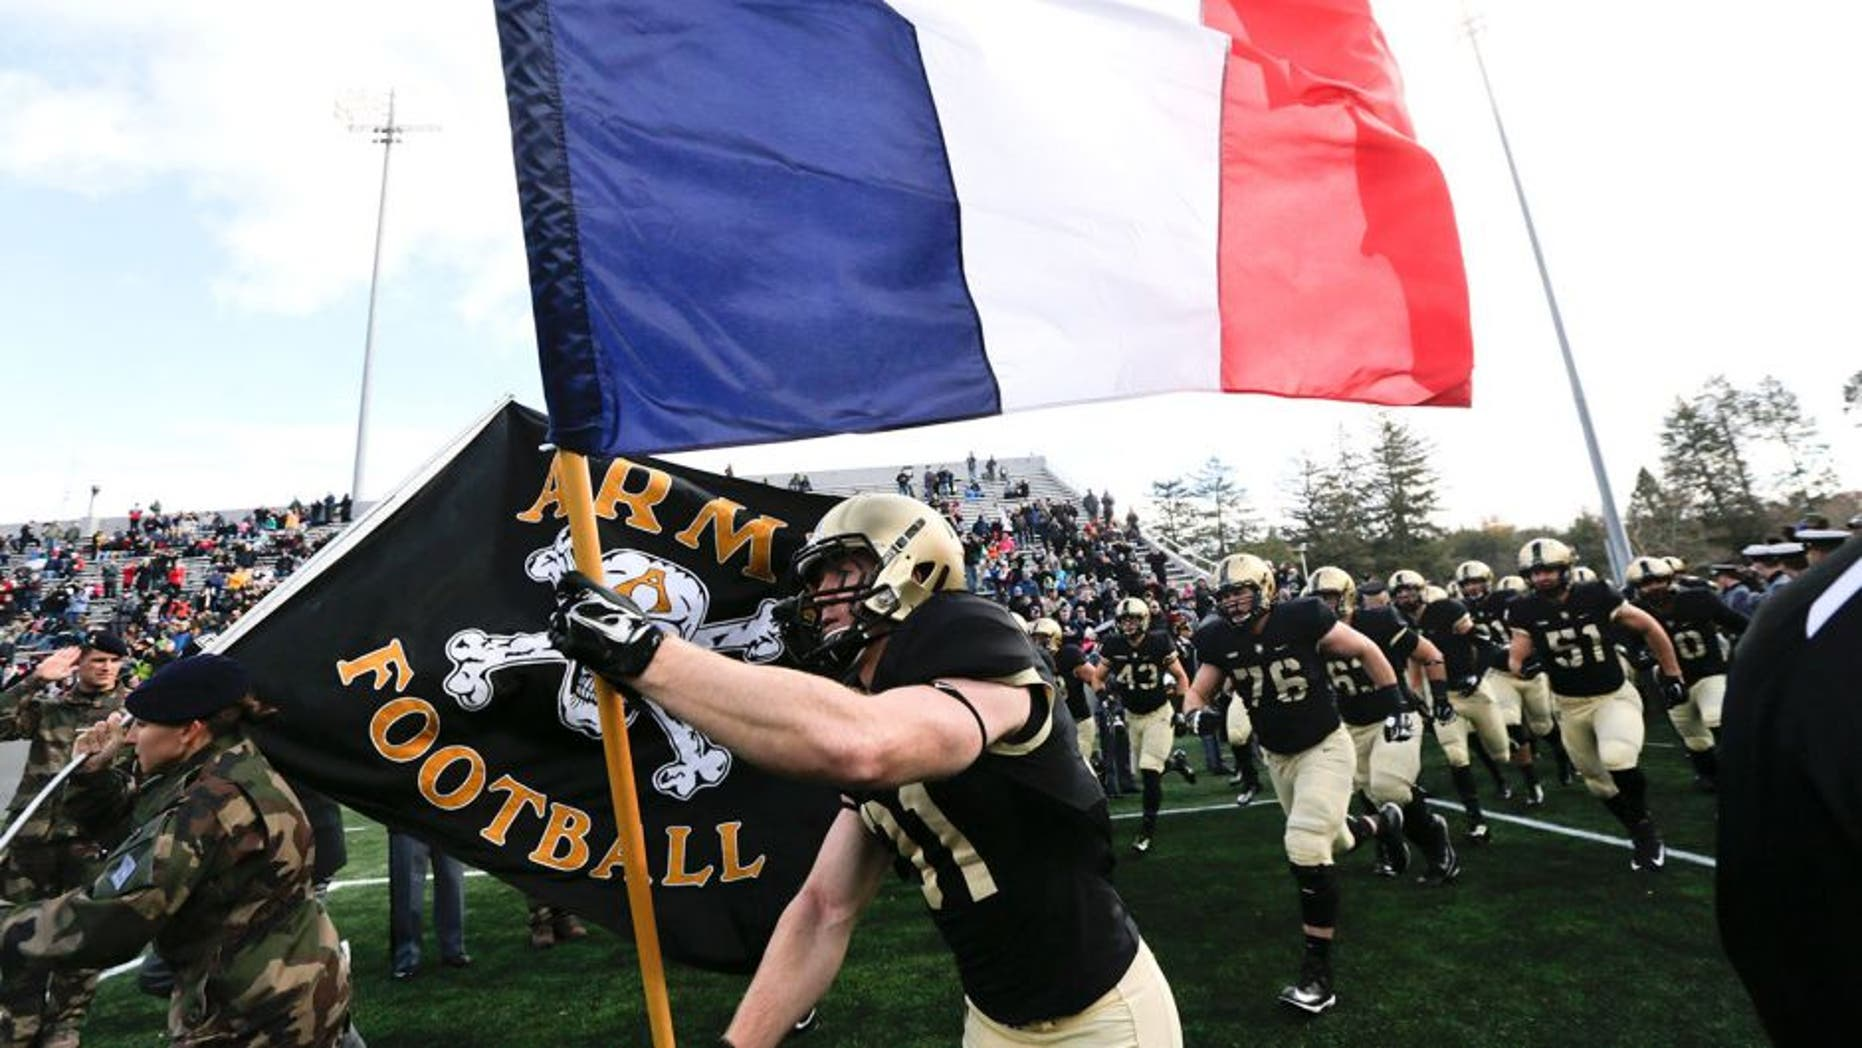 Army defensive back Caleb McNeill carries the flag of France onto the field before an NCAA college football game against Tulane, Saturday, Nov. 14, 2015, in West Point, N.Y. (AP Photo/Mike Groll)